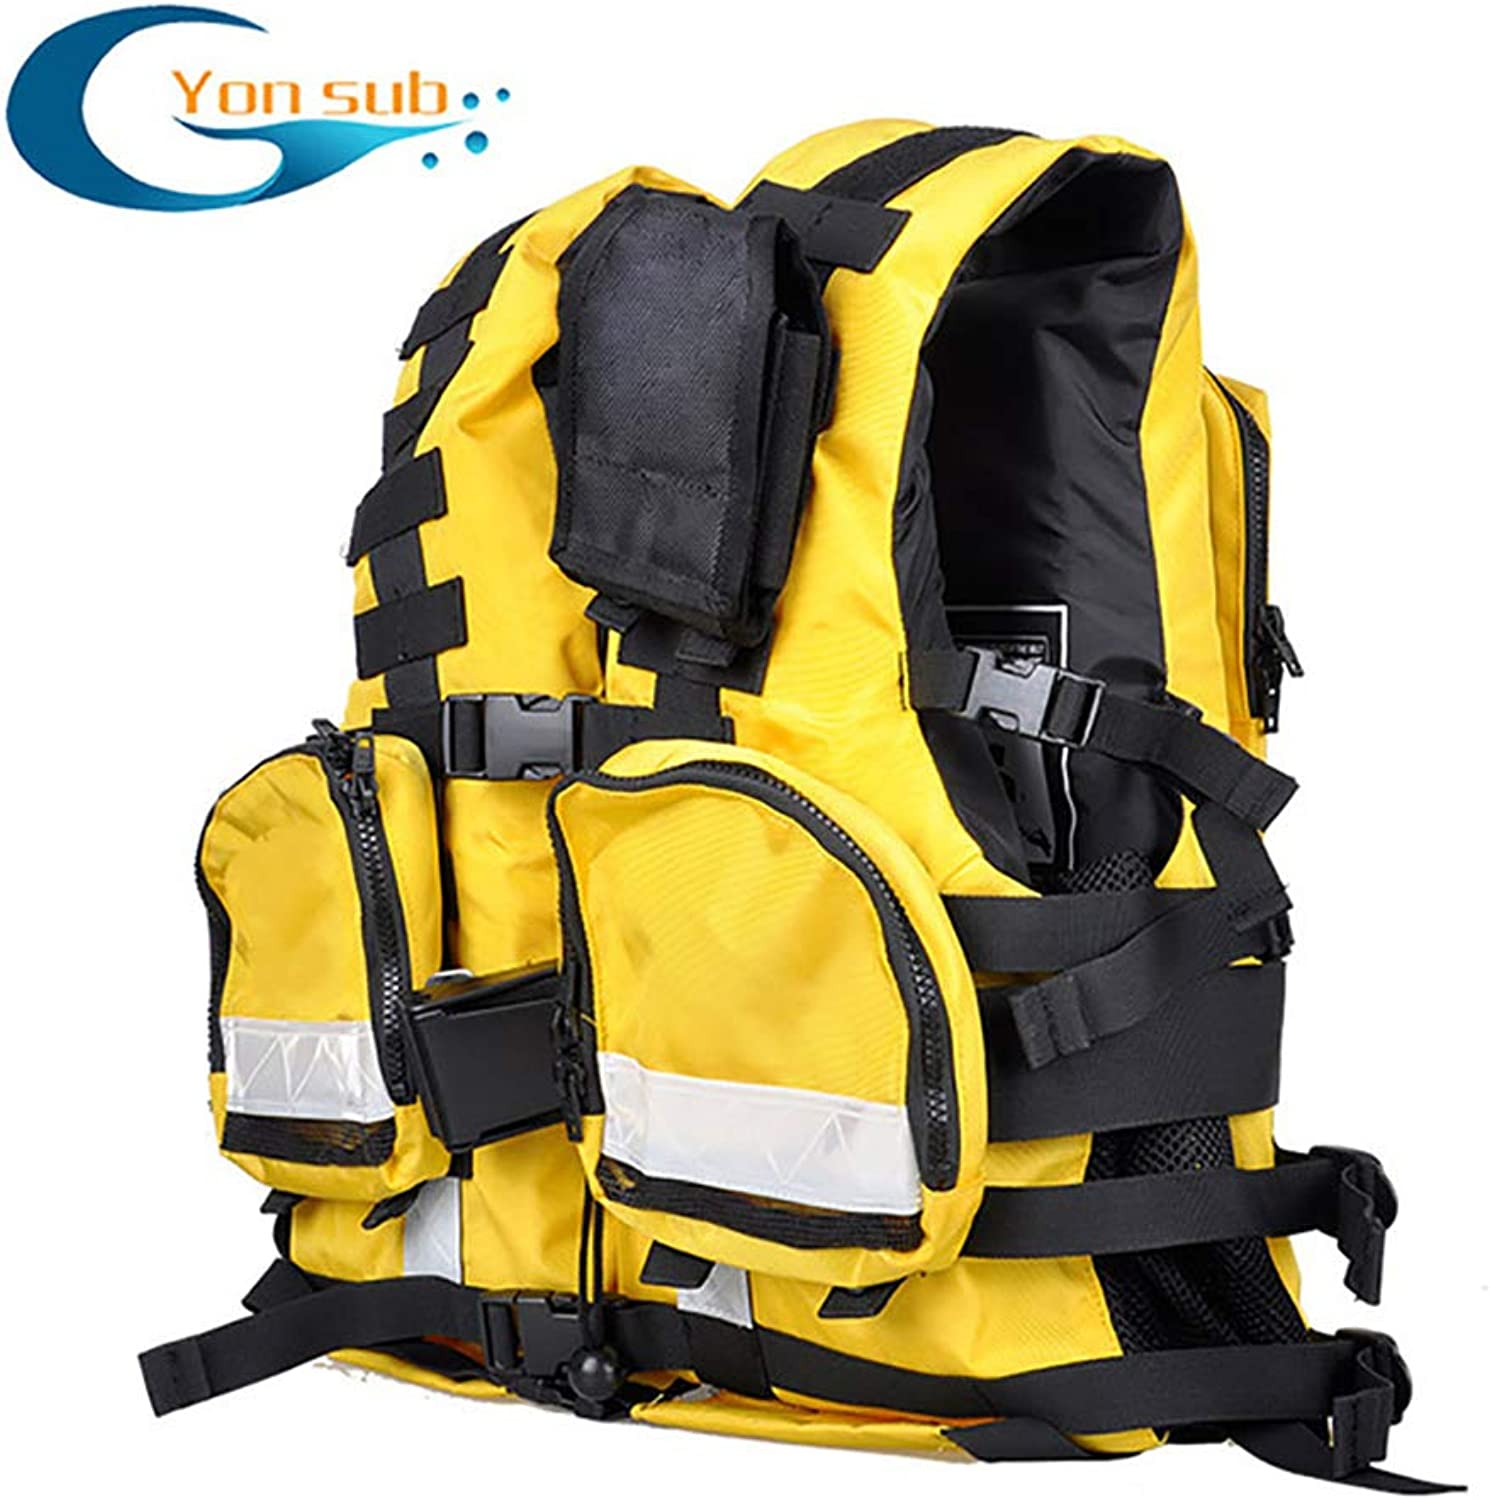 blueee Sky Life Jacket Flood Control Tactical Vest Male and Female Adult Rescue Team Rescue Rescue Life Vest